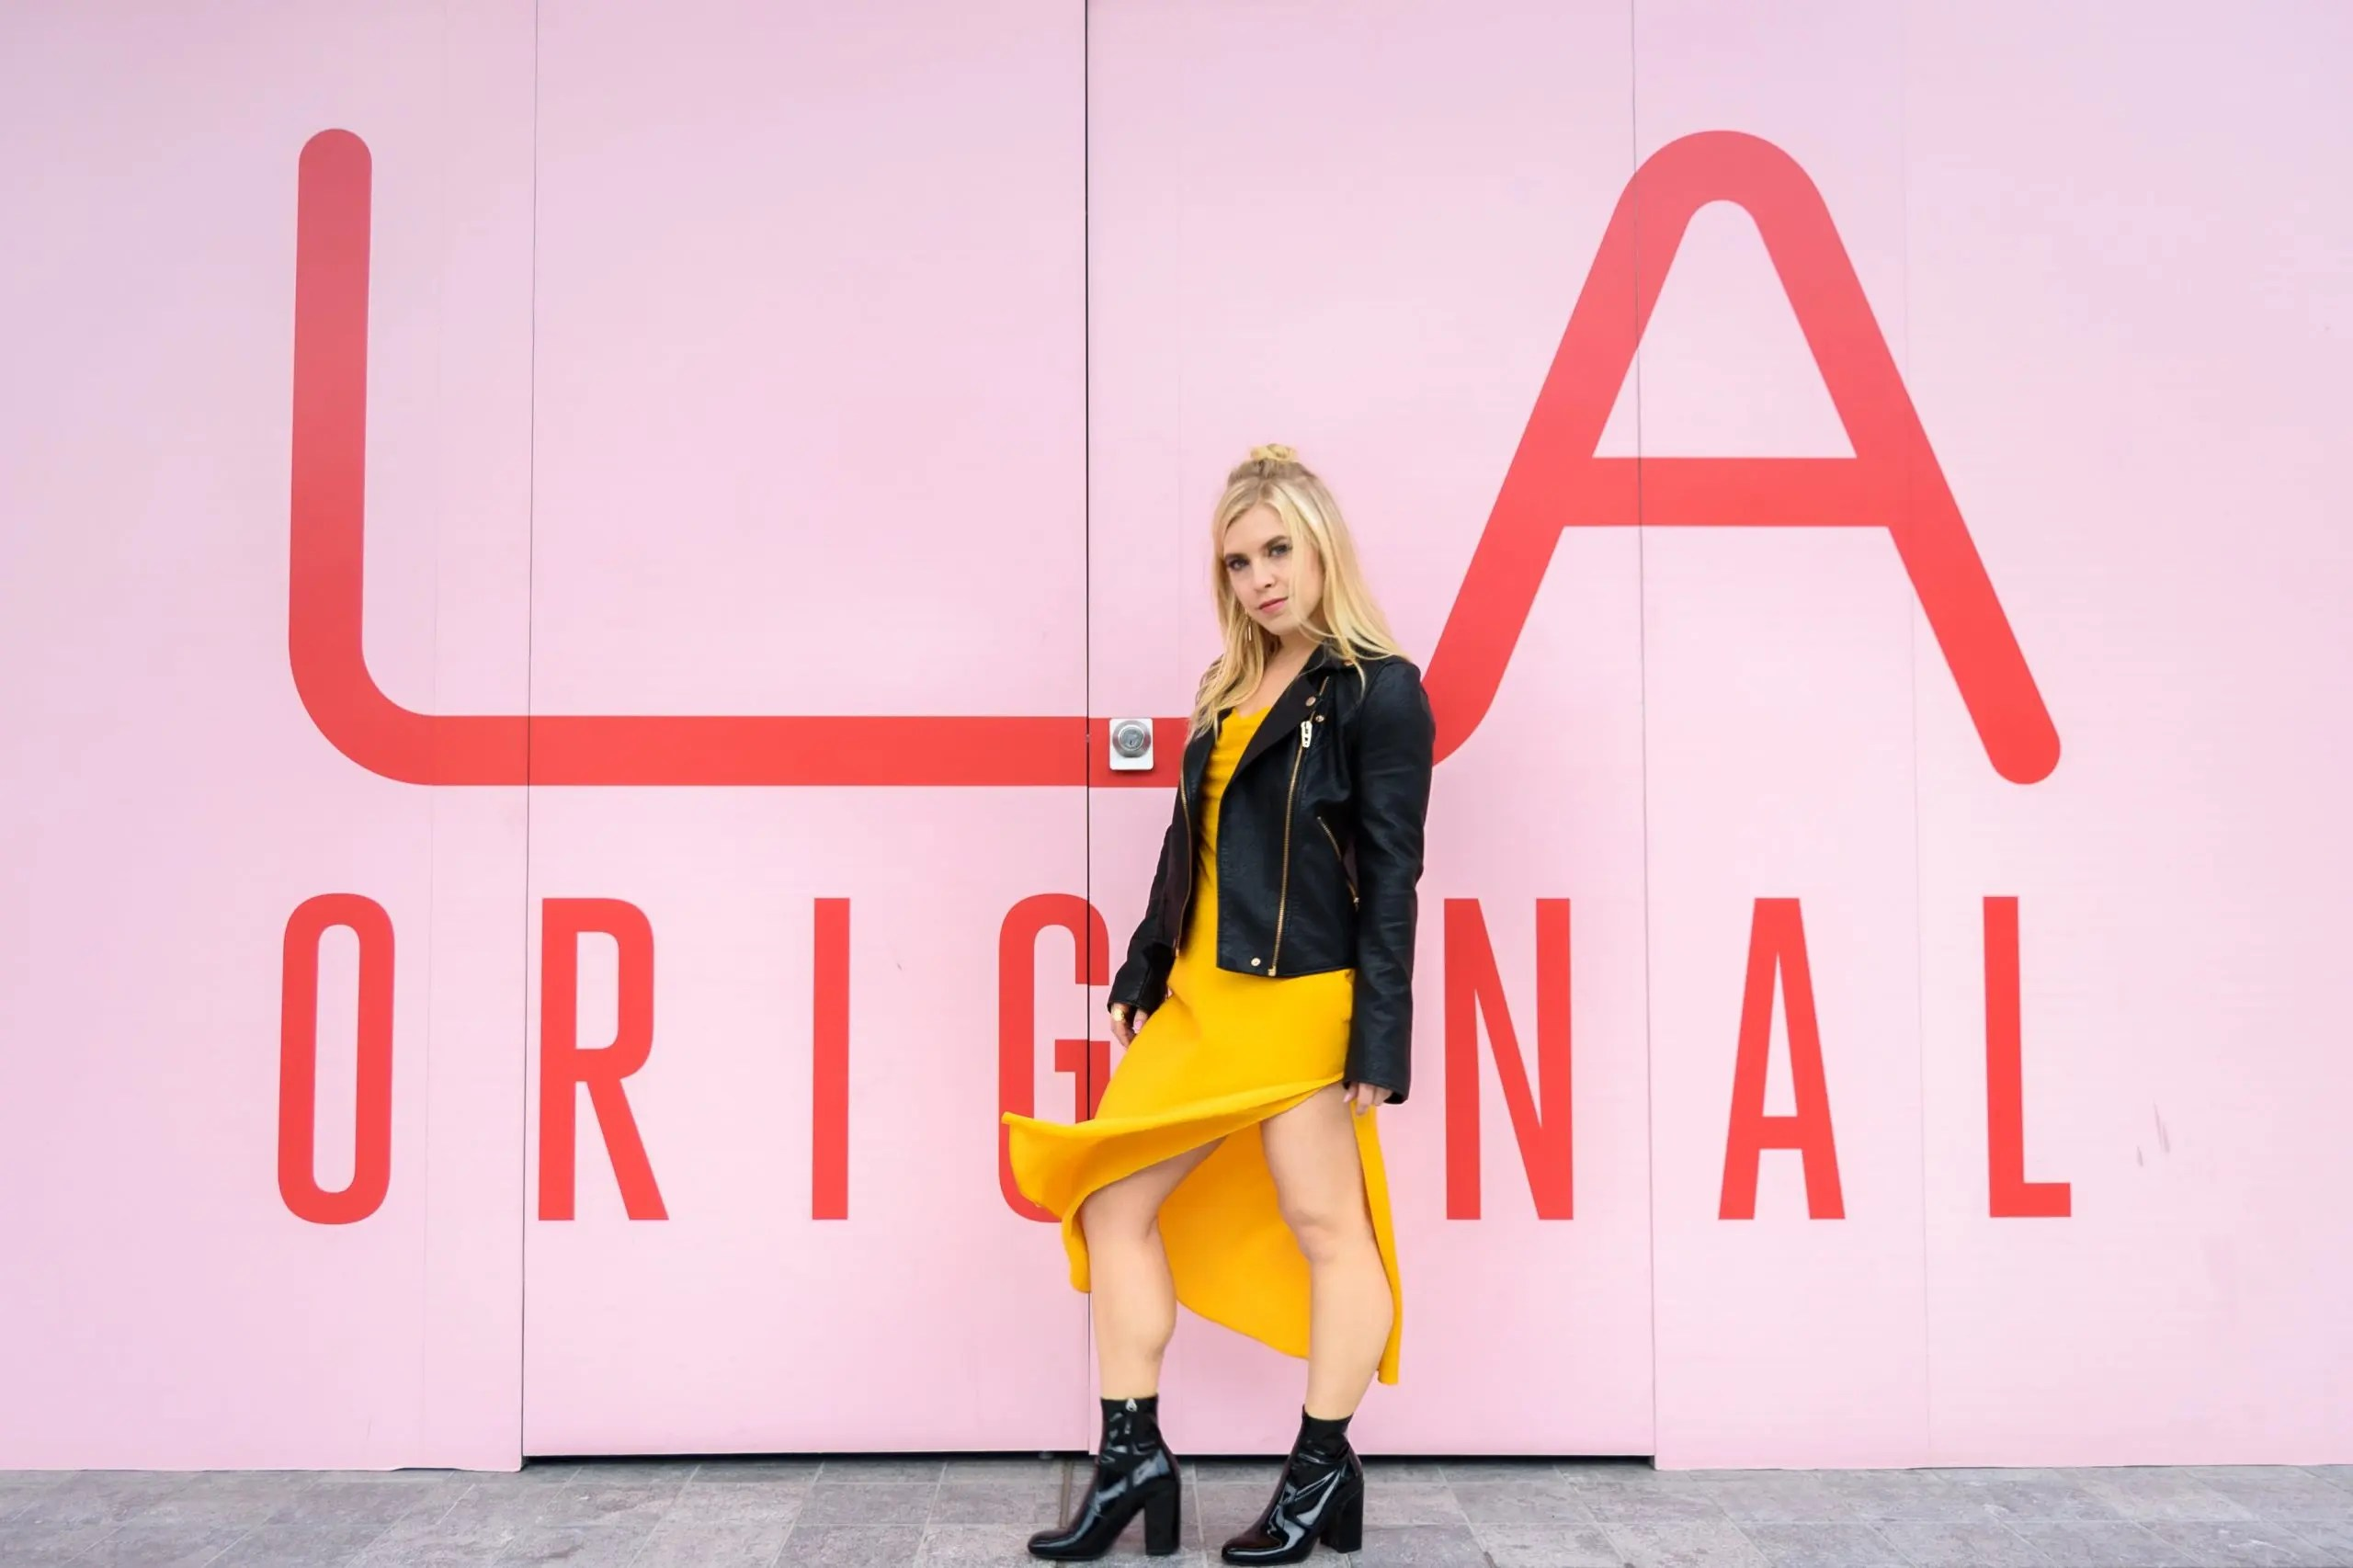 """Model standing in front of a sign """"LA Original"""" that is shaded in pink contrasting with her black jacket and yellow dress."""